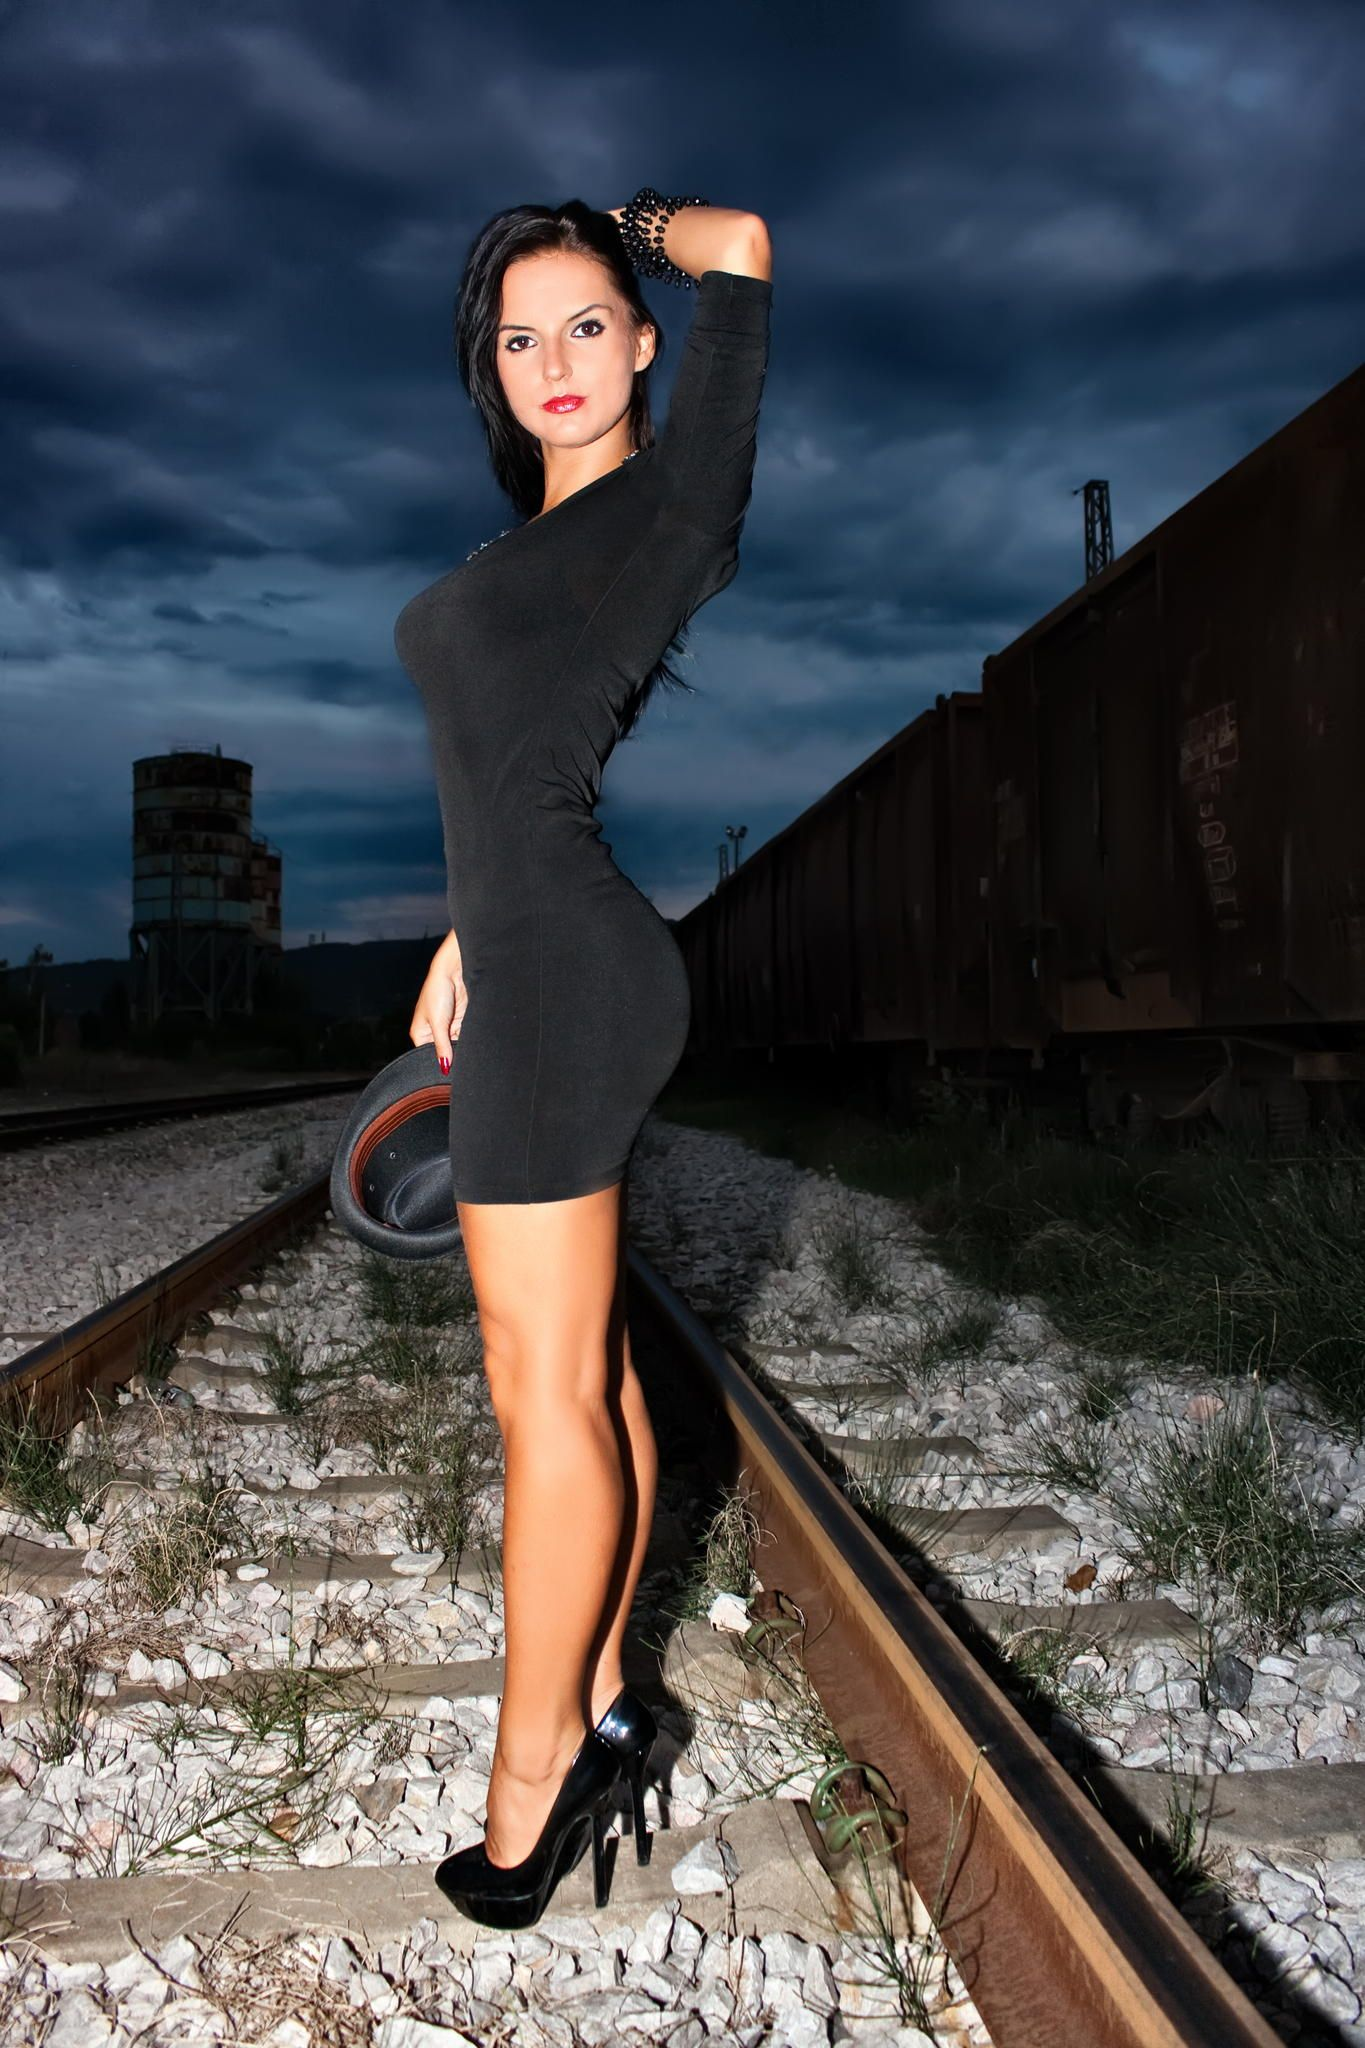 Beautiful Young Woman In A Black Dress On A Railway Line